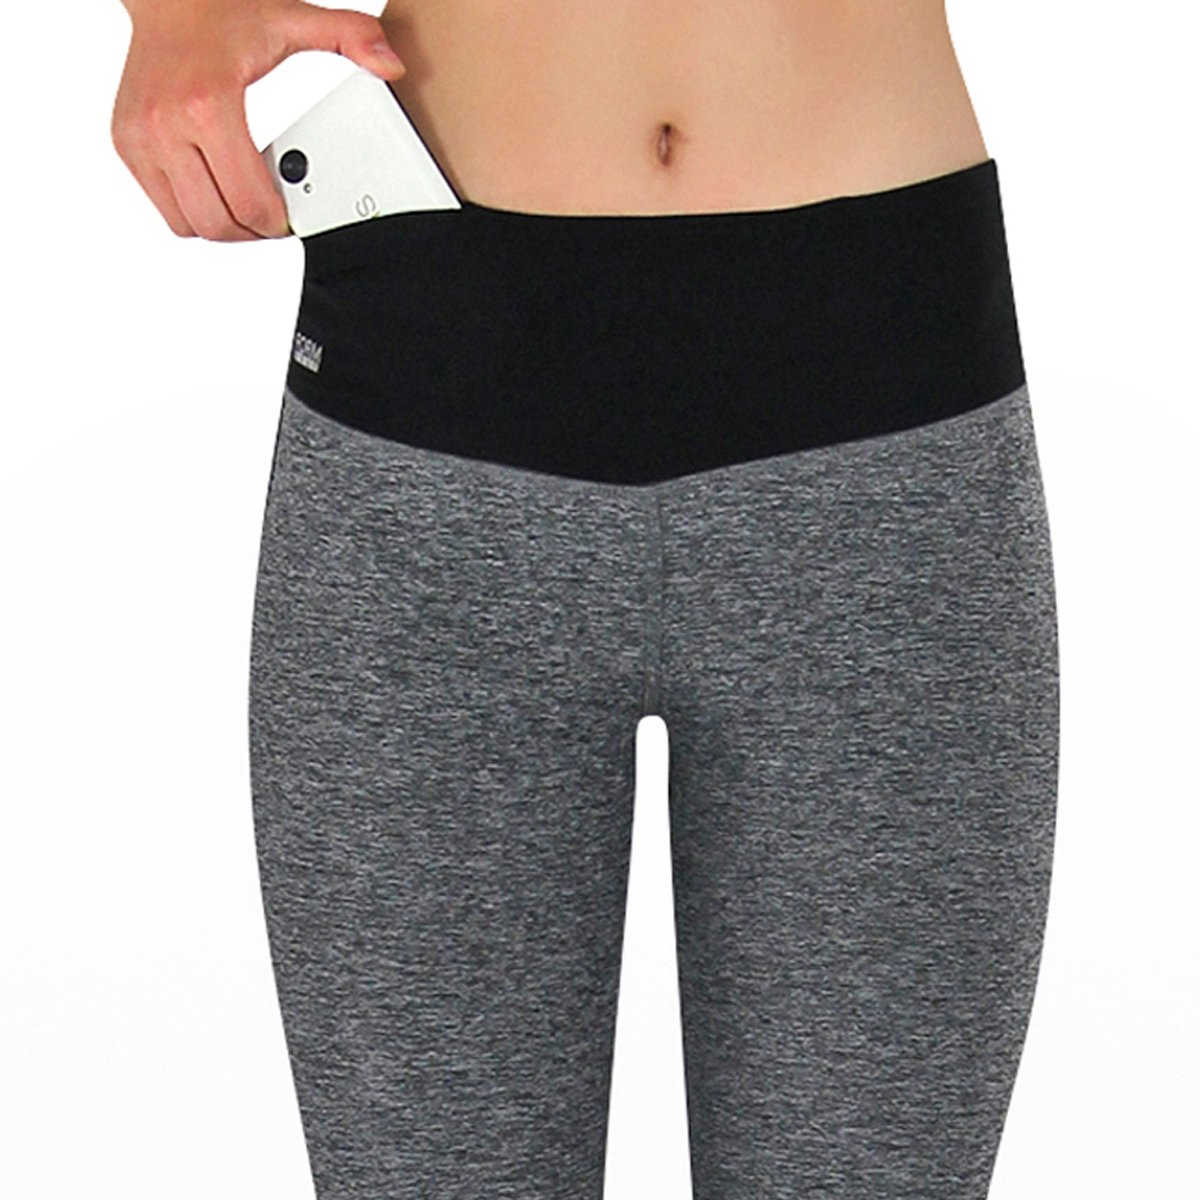 damen sport leggings mit blumenmuster online g nstig kaufen. Black Bedroom Furniture Sets. Home Design Ideas